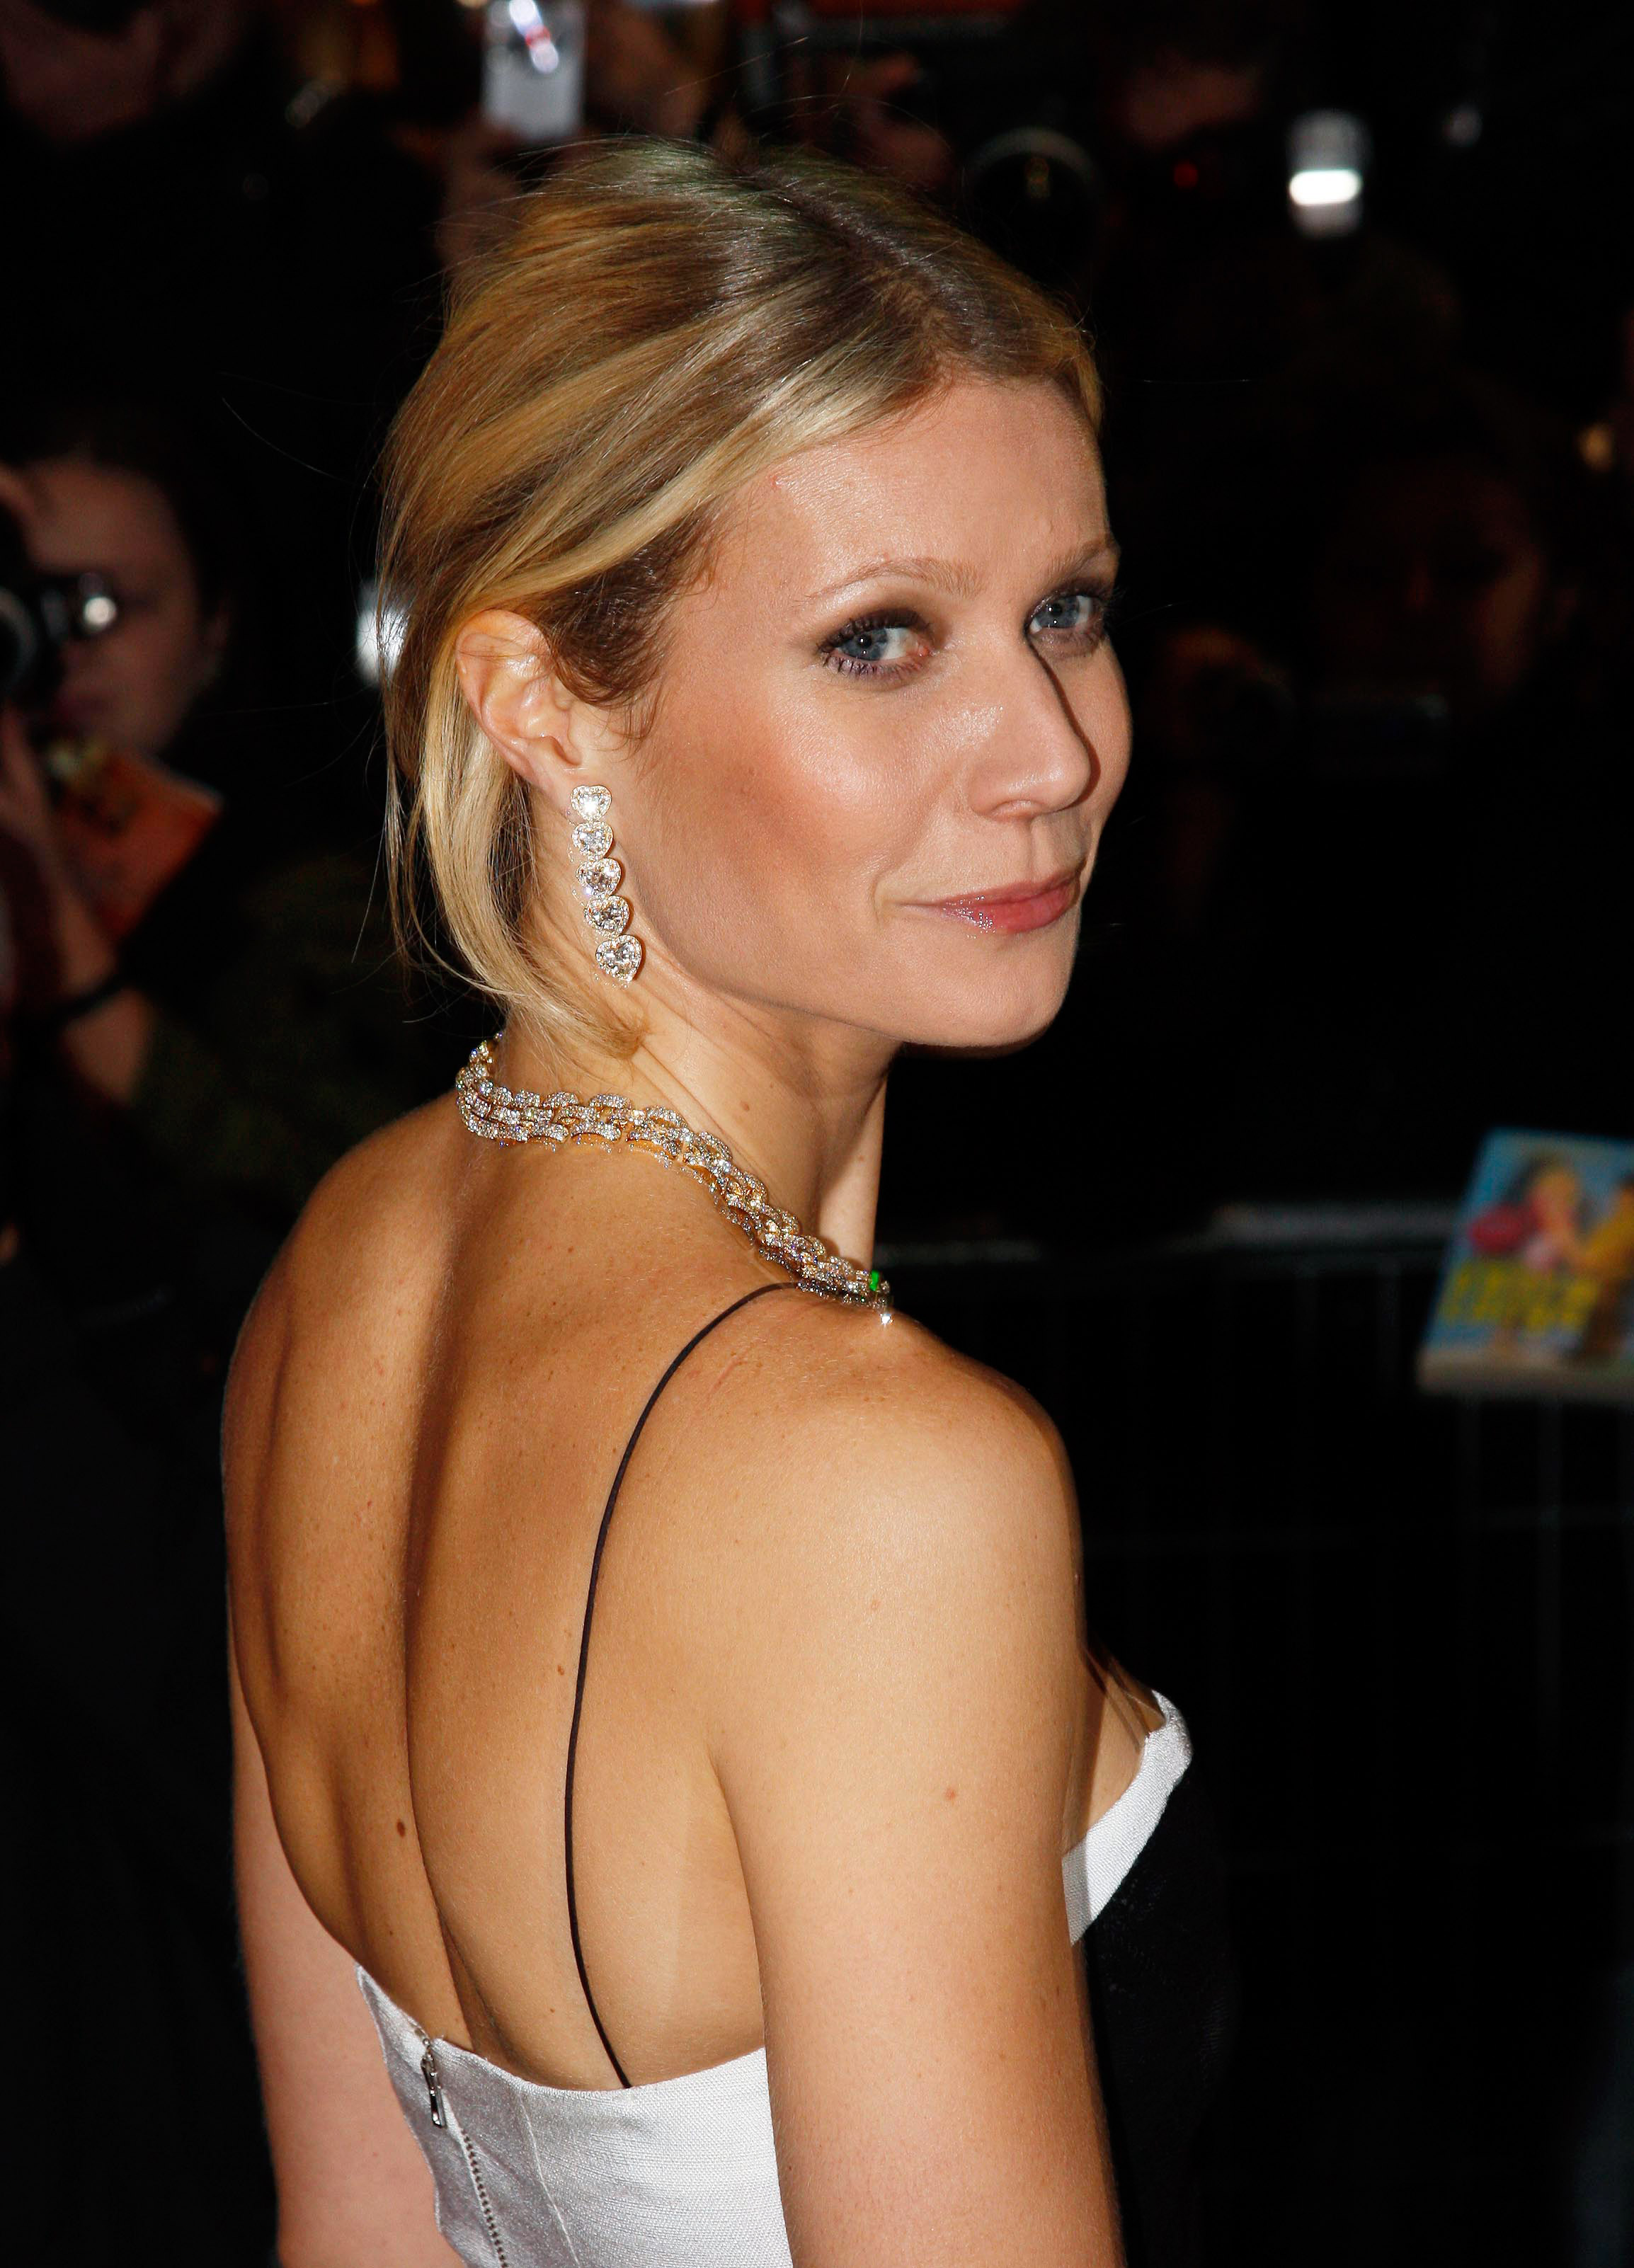 37256_Celebutopia-Gwyneth_Paltrow-Two_Lovers_French_premiere_in_Paris-07_122_766lo.jpg